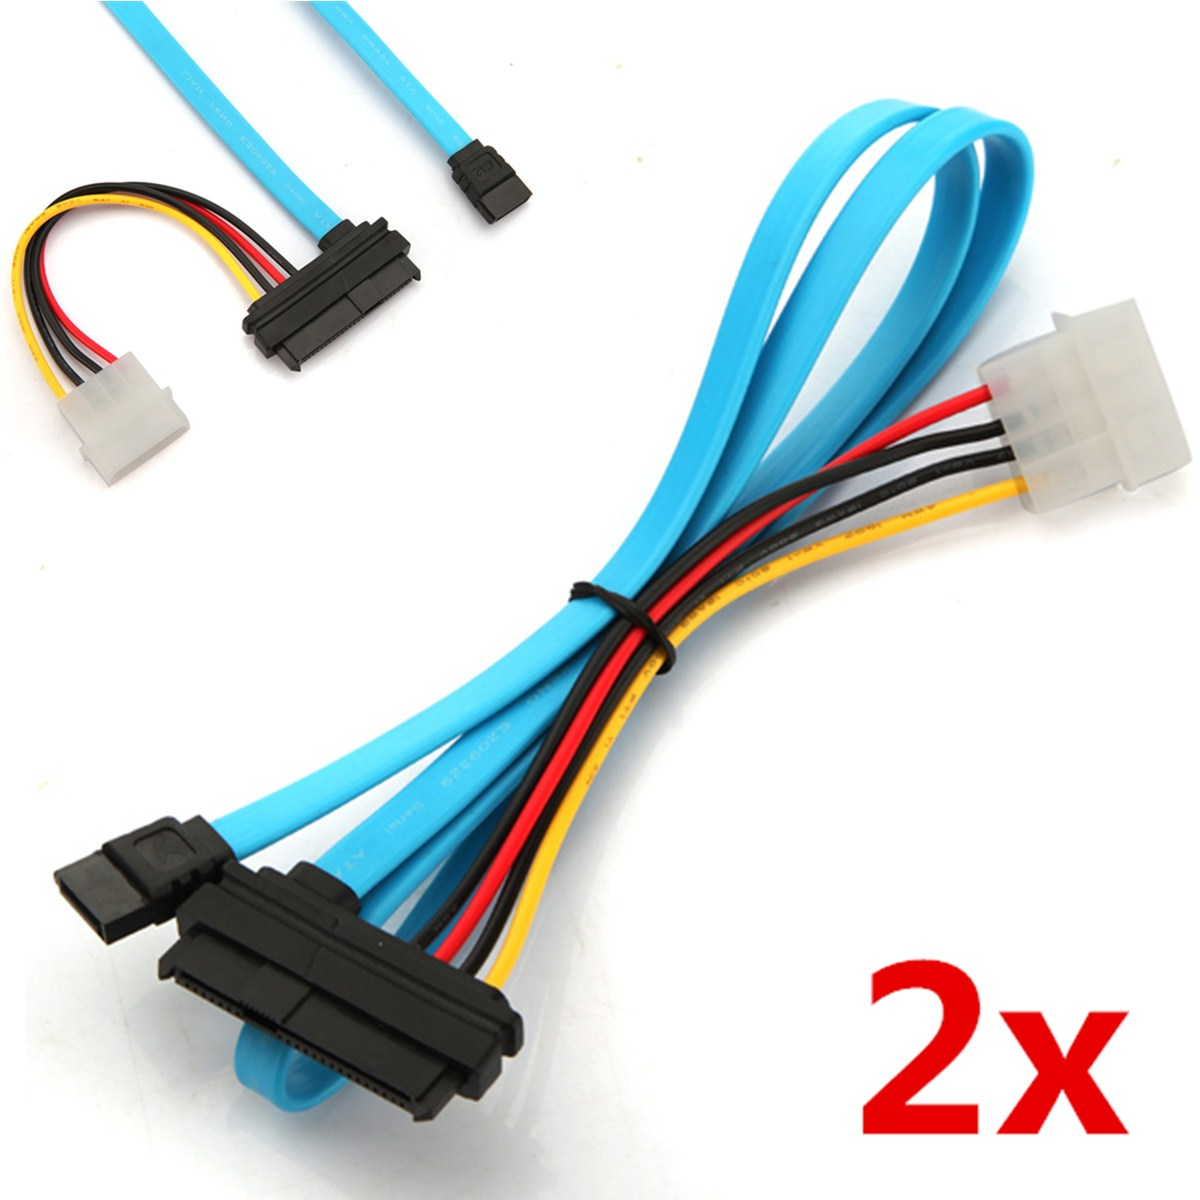 2 pcs 7 Pin SATA Serial Female ATA to SAS 29 Pin Connector Cable & 4 Pin Male Power Cable Adapter Converter for Hard Disk Drive